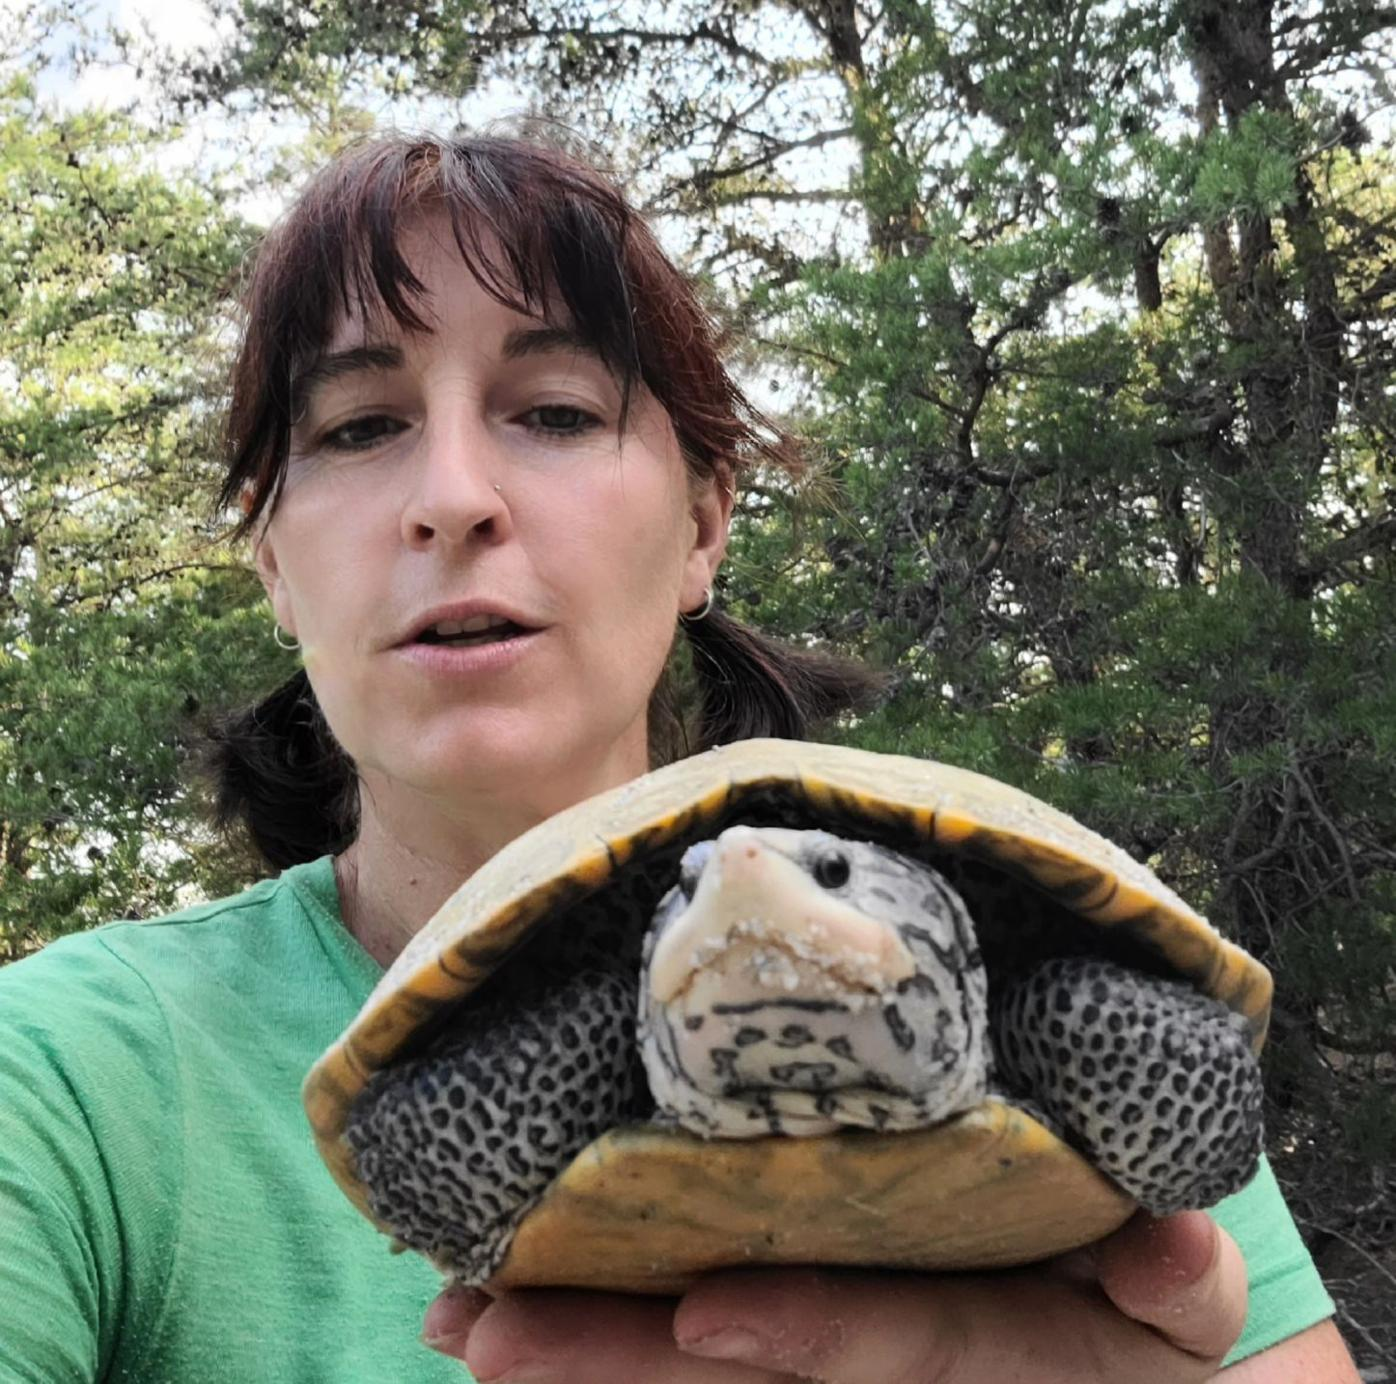 Studying Maryland's official state reptile on Pax River's beaches